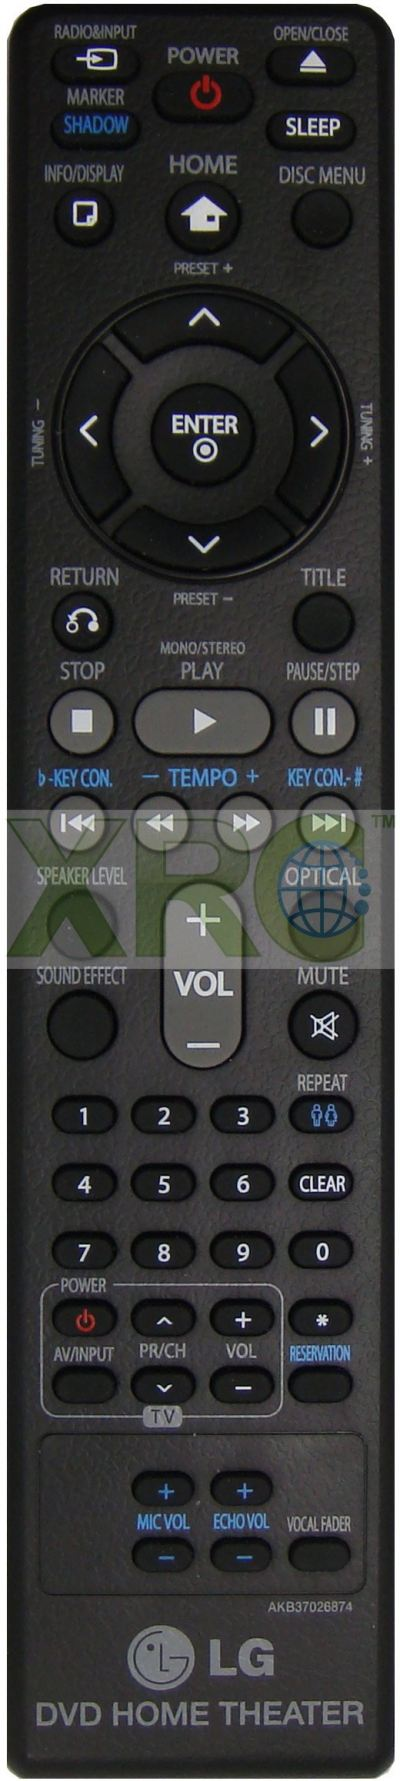 AKB37026874 LG HOME THEATER REMOTE CONTROL